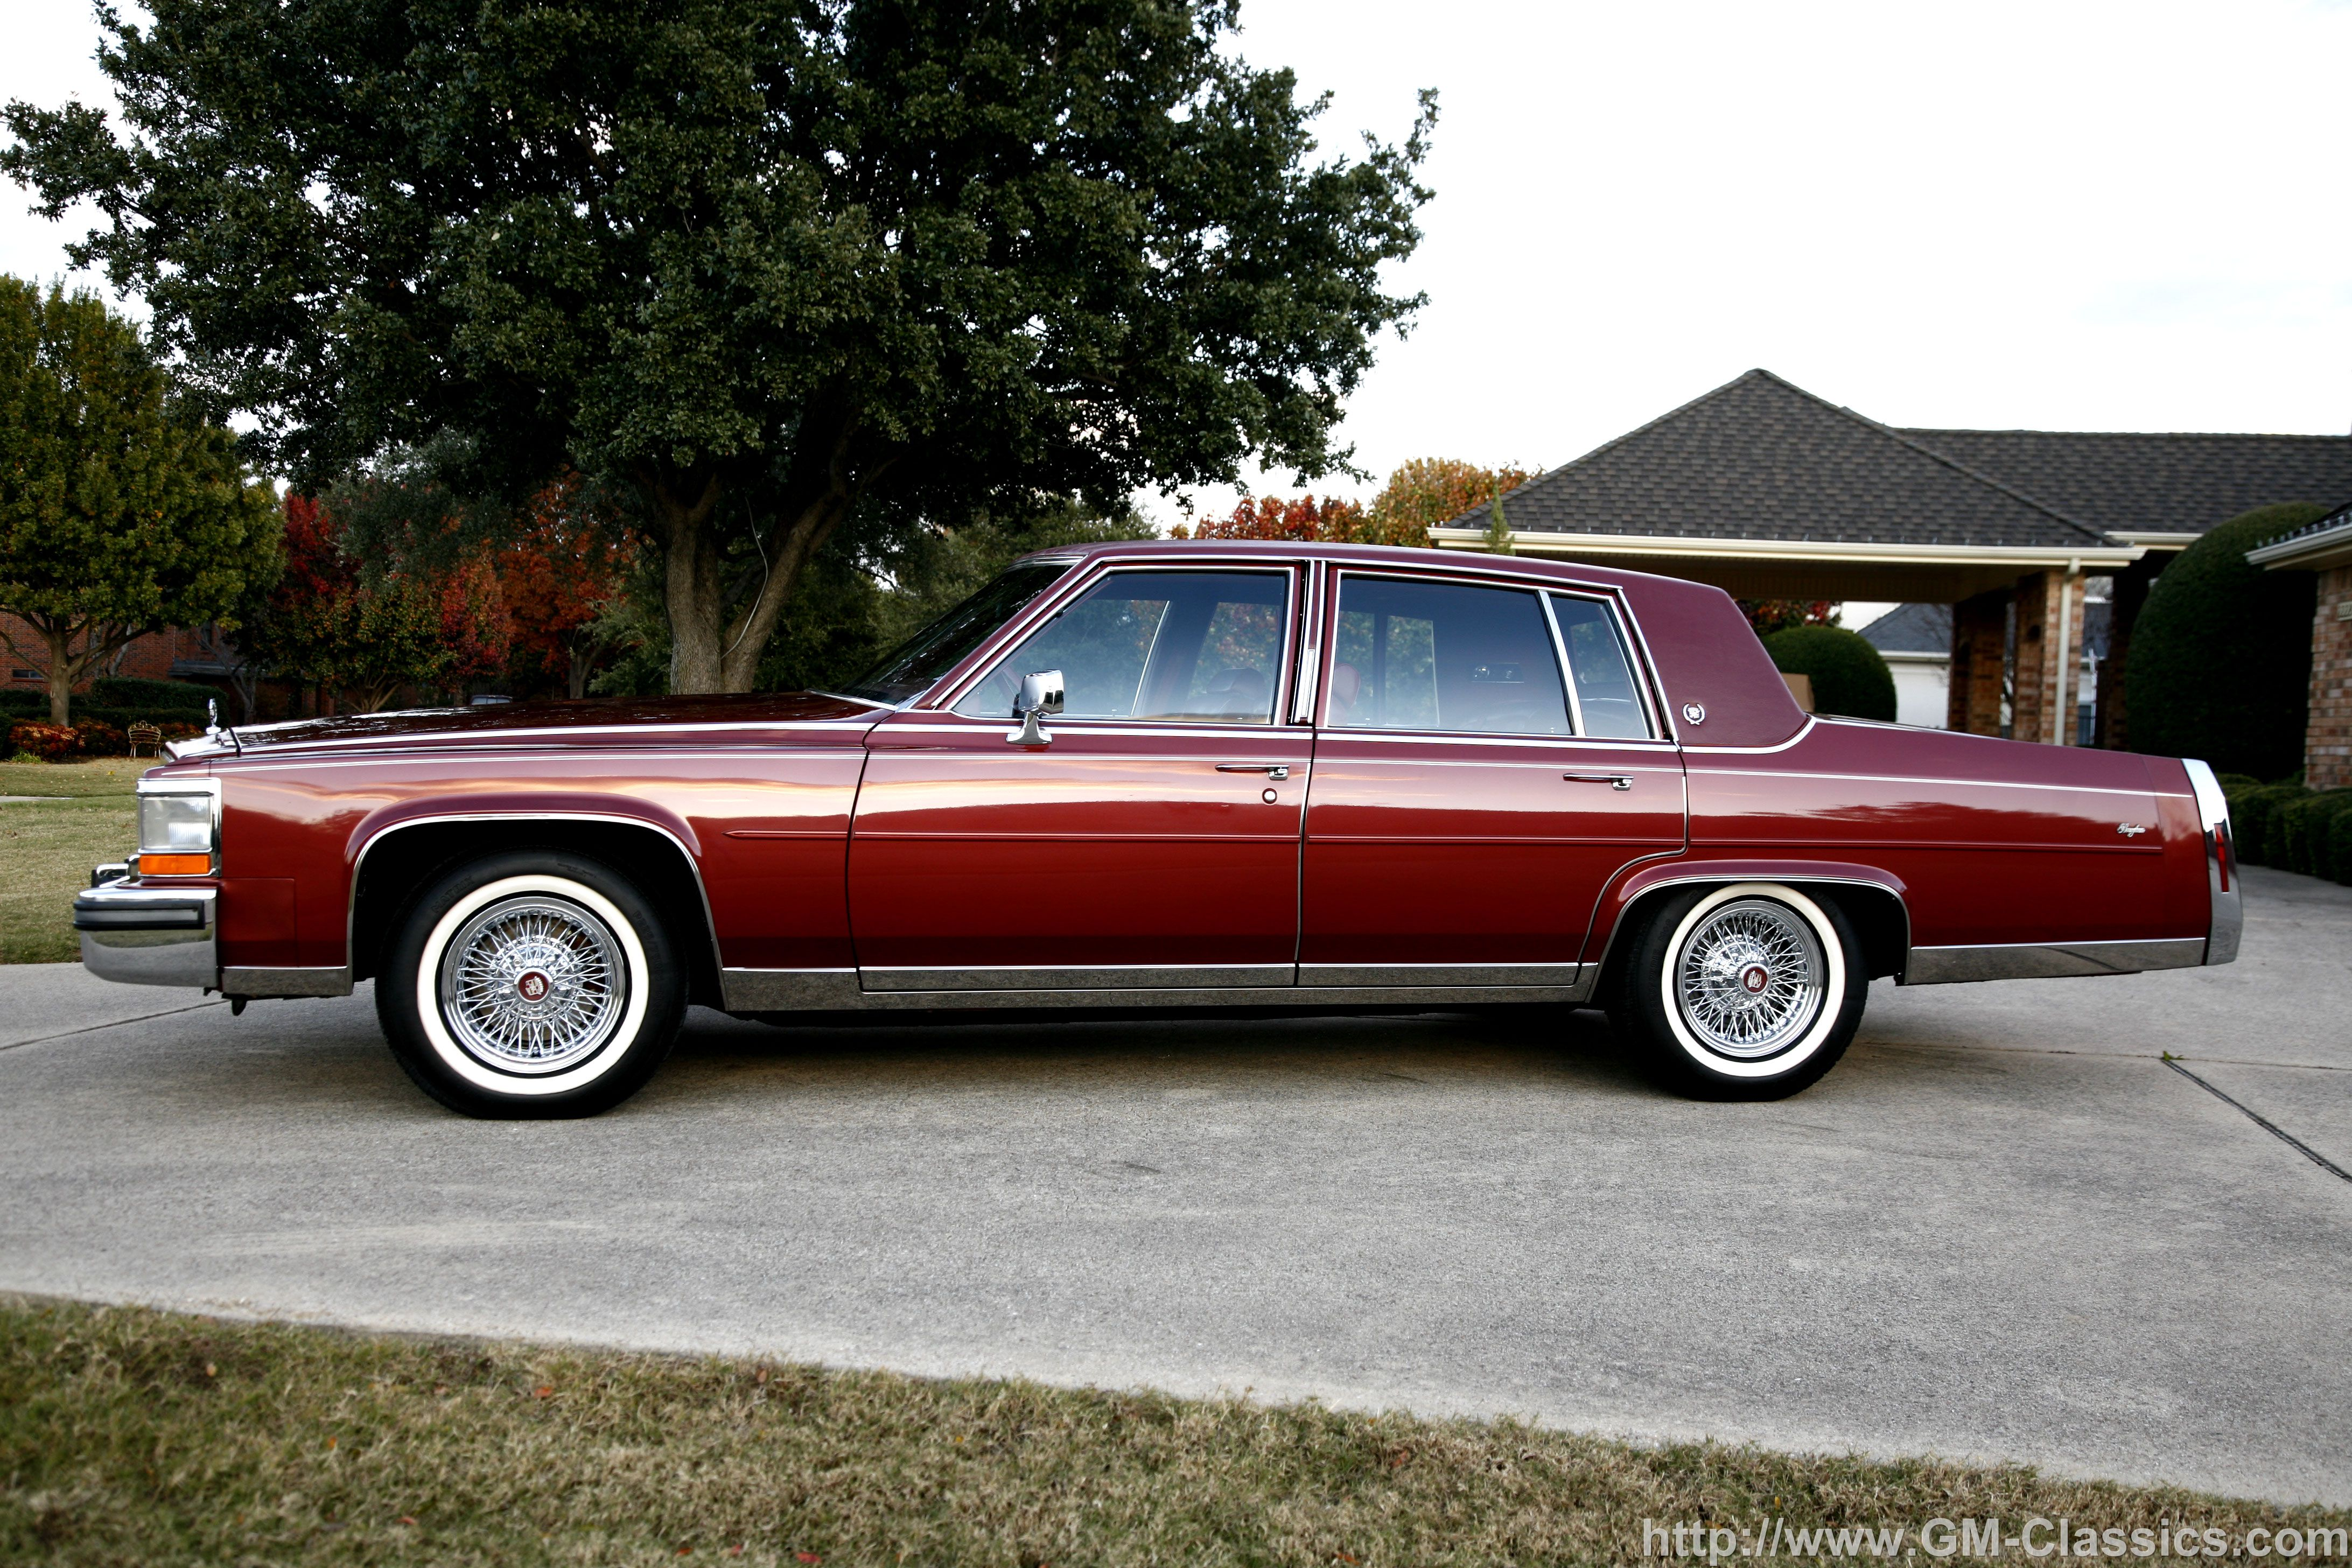 commons wikimedia cadillac brougham igcd in strange for saville vehicle is org wikipedia life seville fleetwood net sale upload